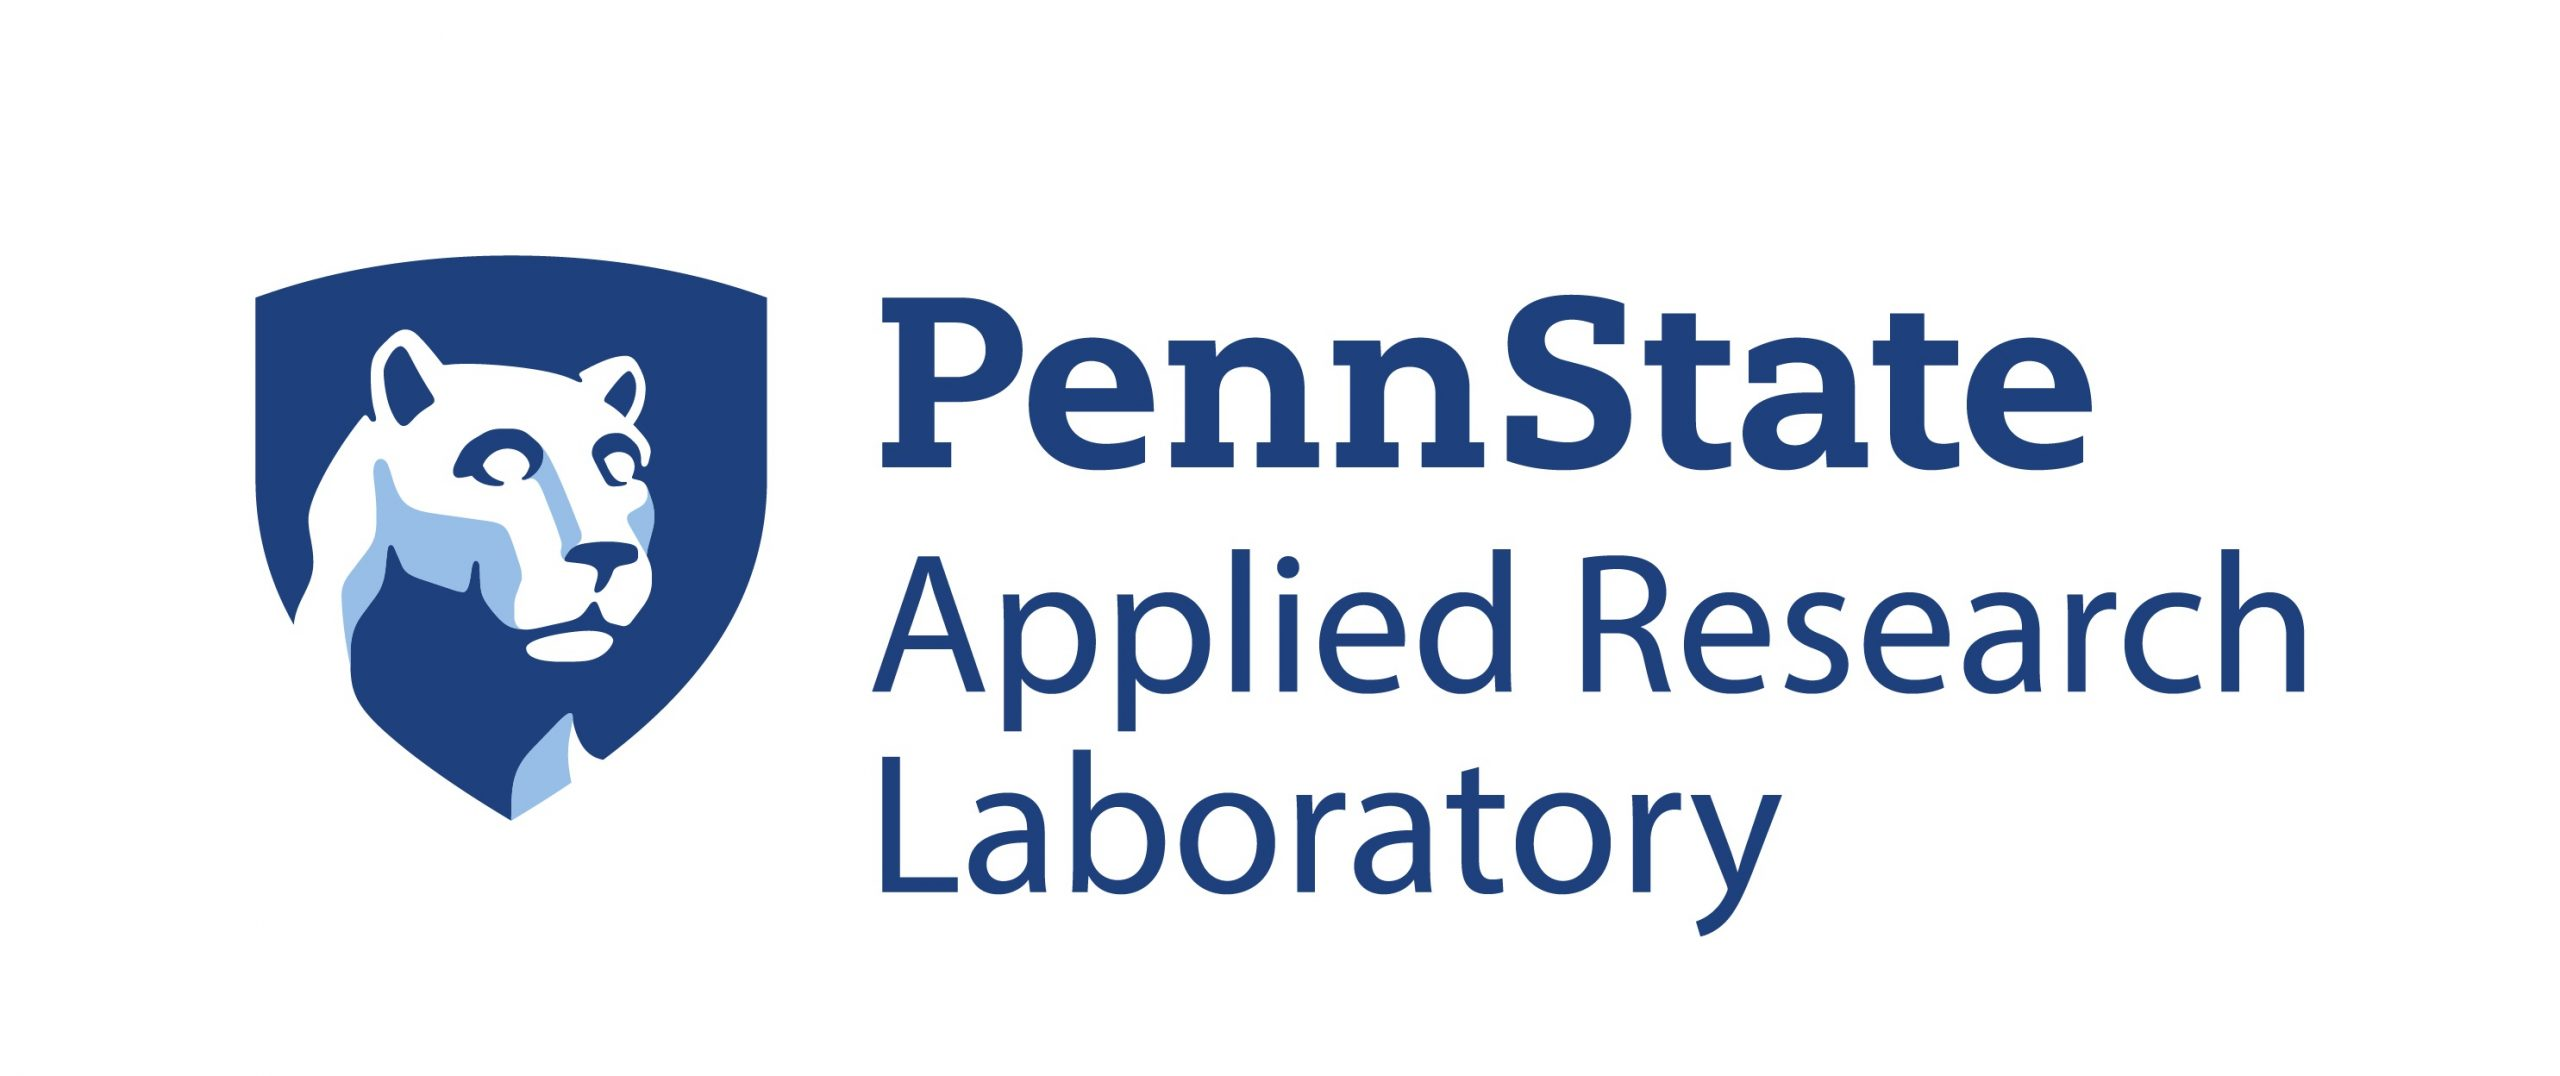 Applied Research Laboratory at Penn State University